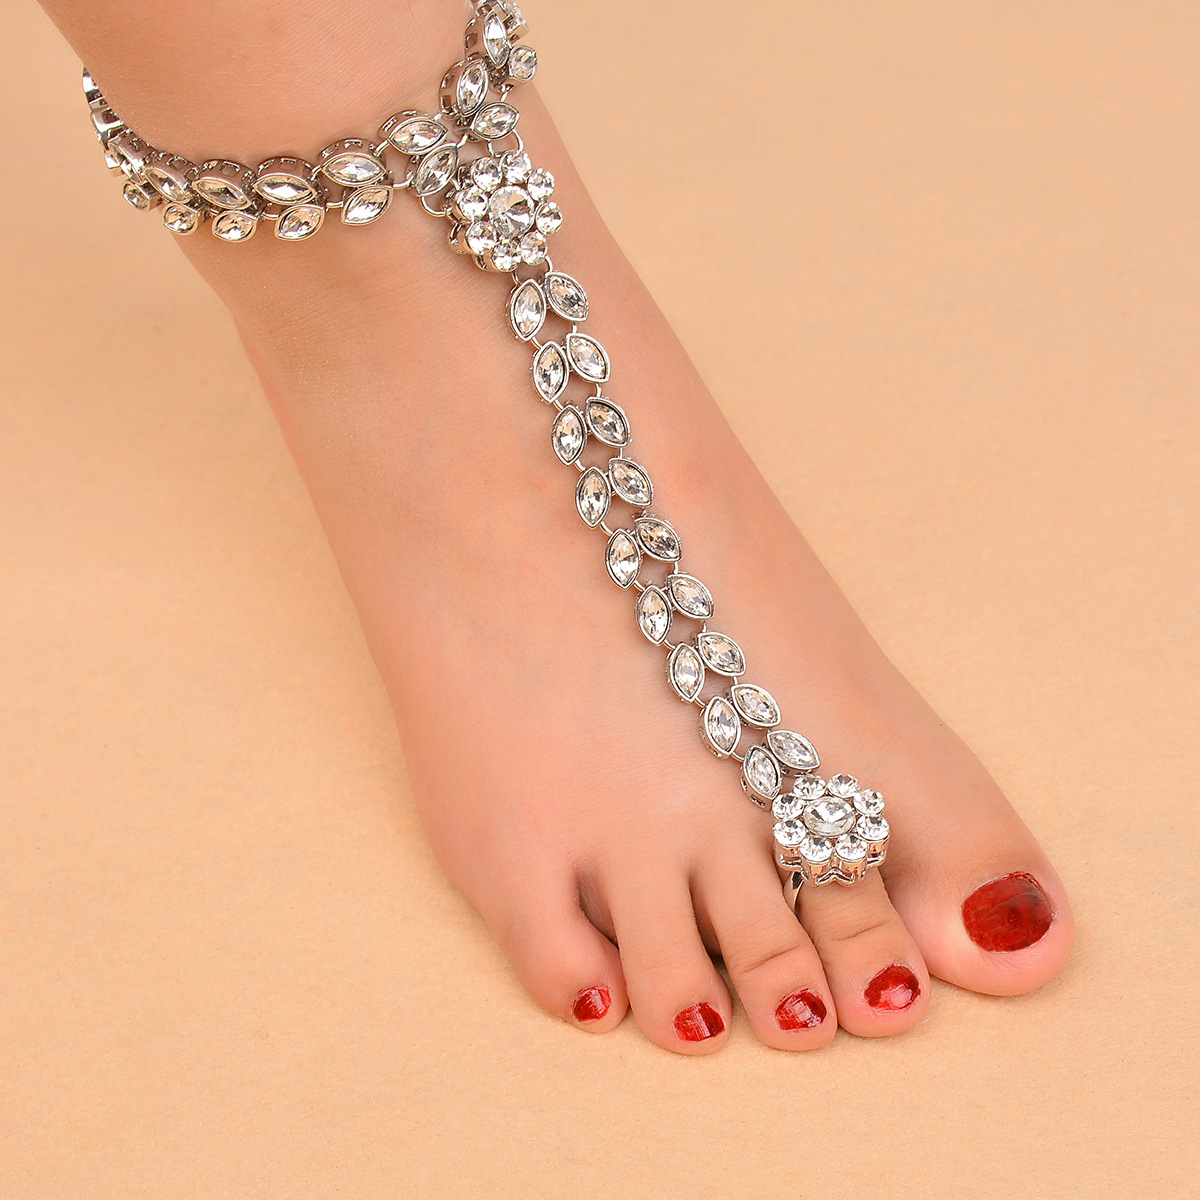 Simple alloy Diamond Anklet (H0141 silver)NHXR1481-H0141 silver